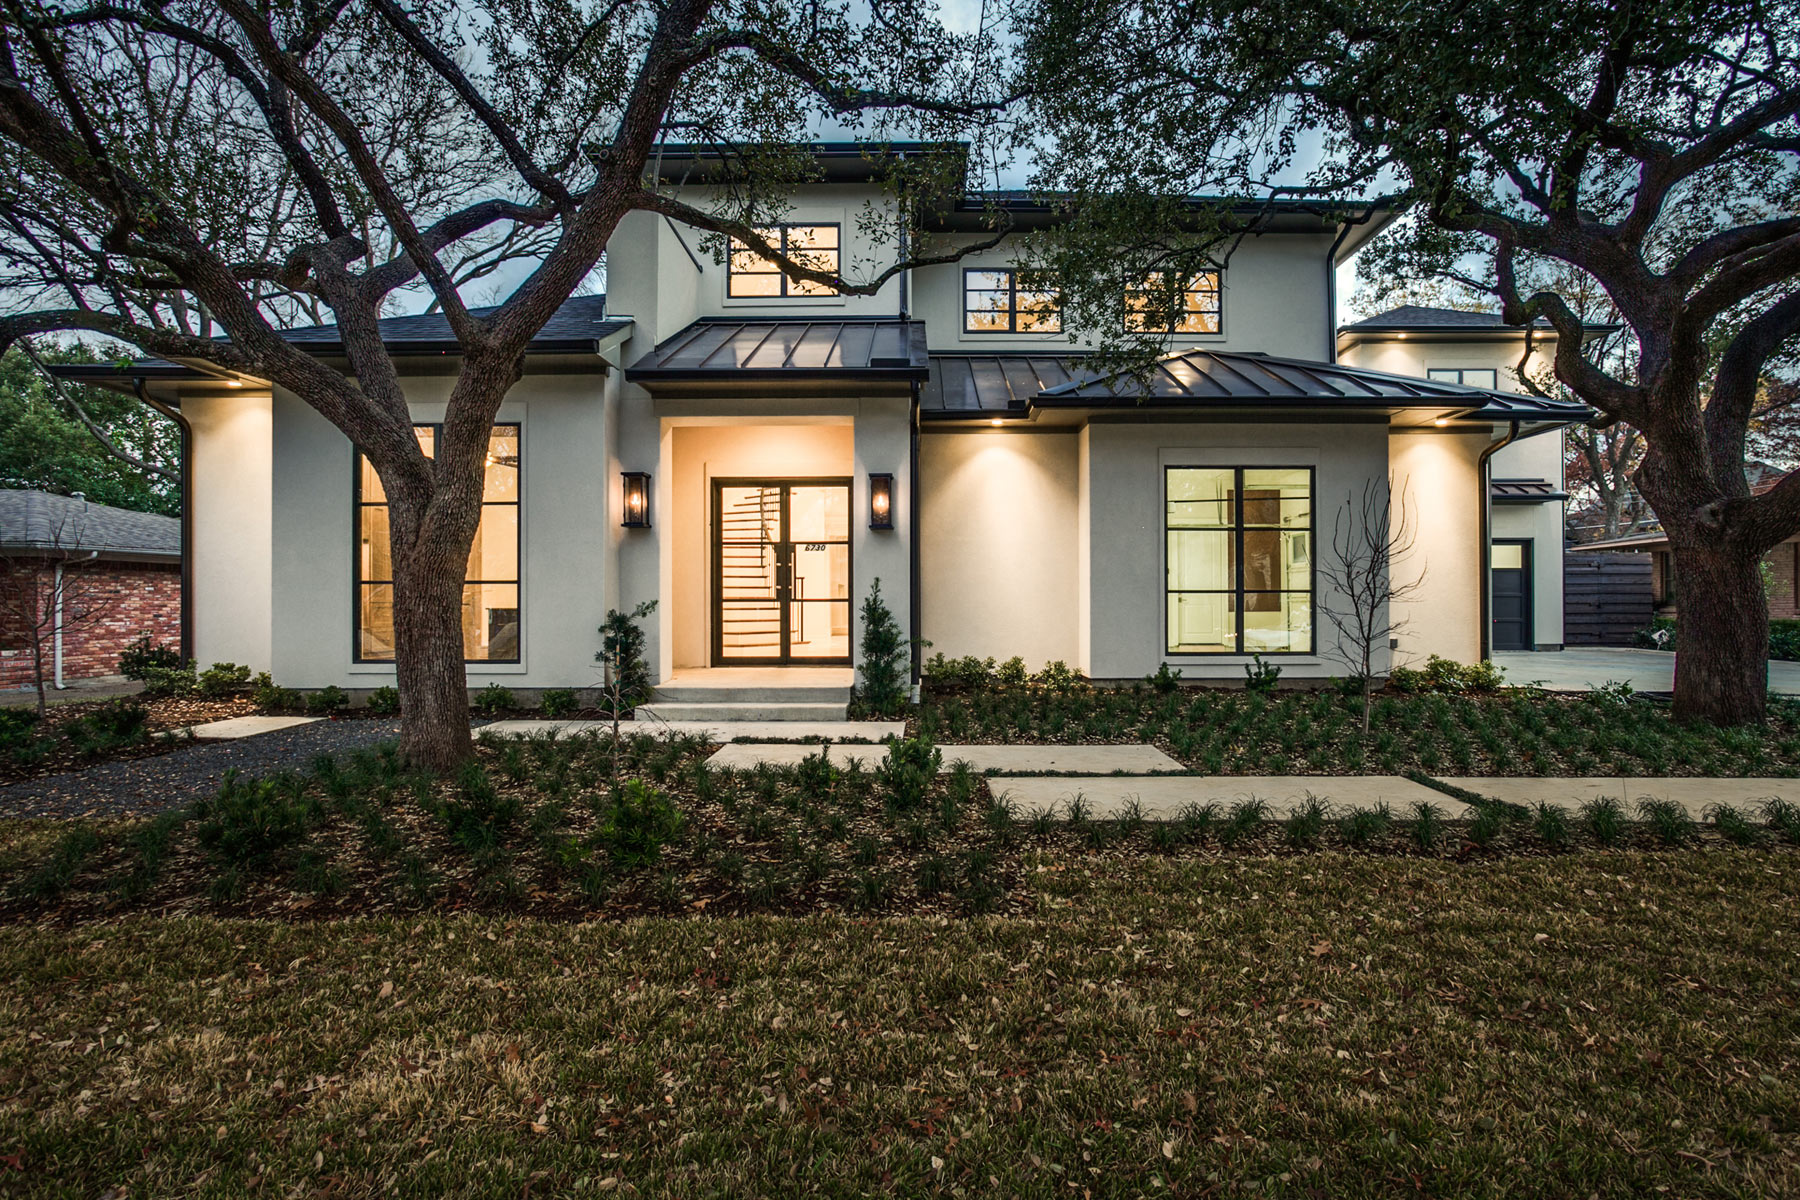 Transitional modern in preston hollow sold desco fine for Contemporary houses in dallas for sale